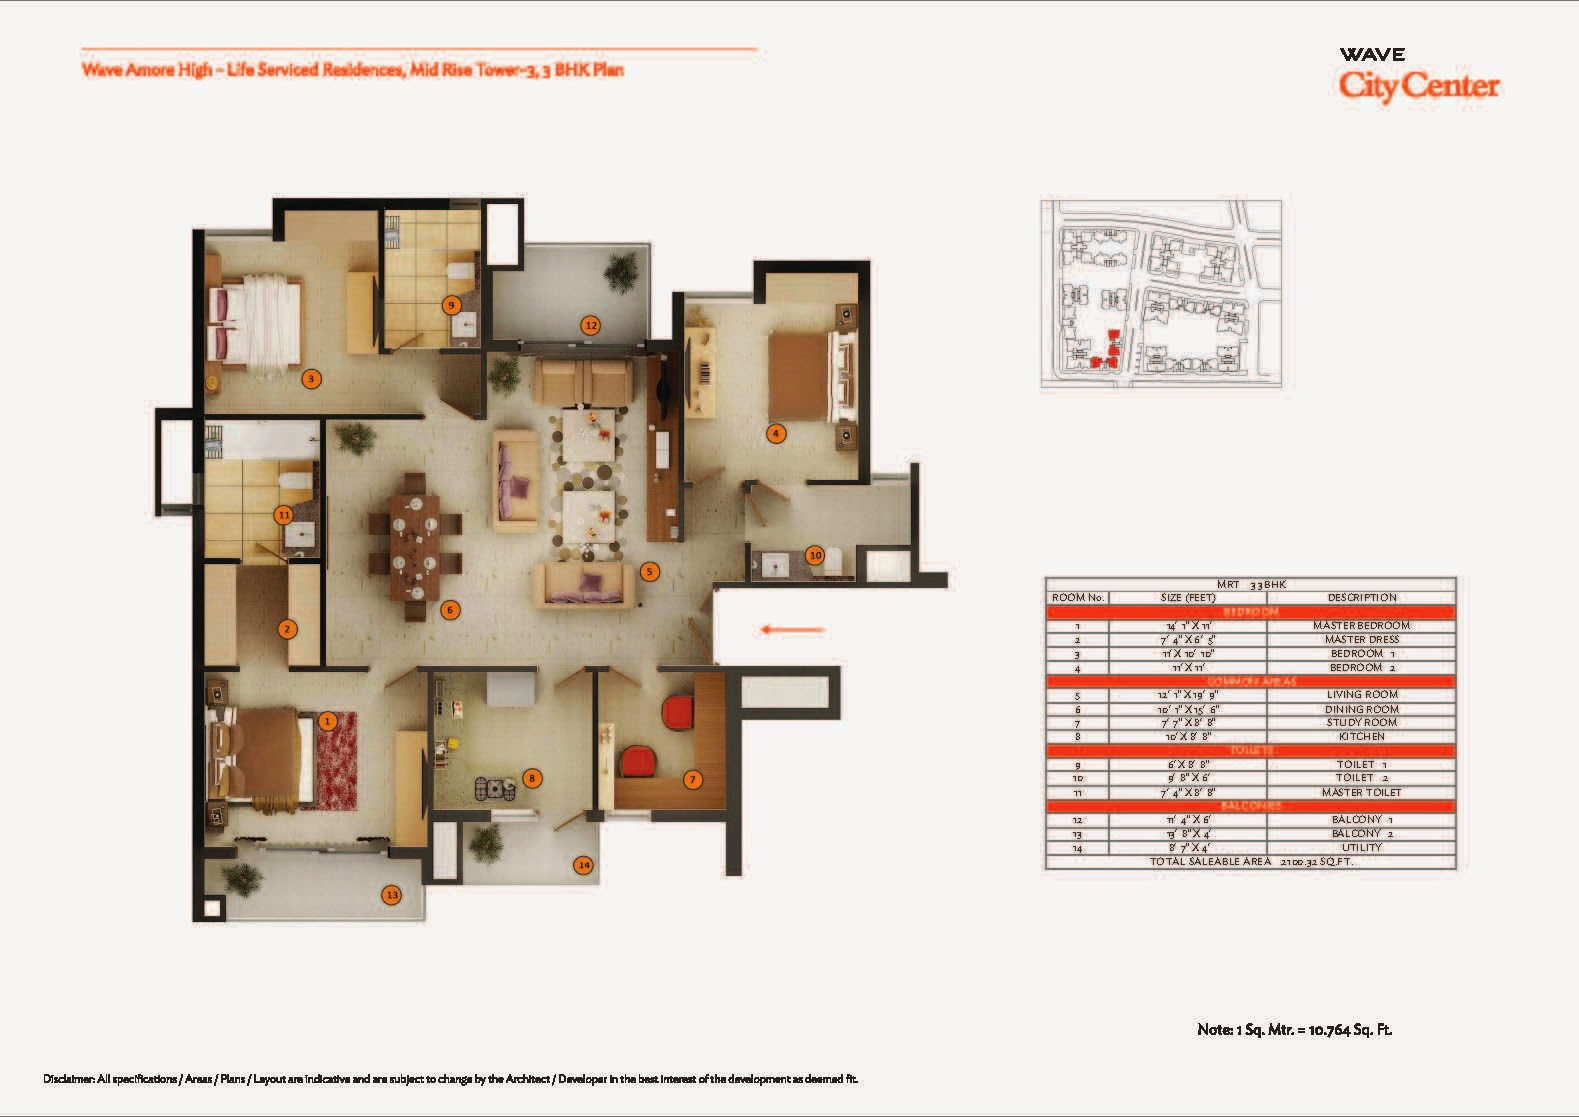 Mid Rise Tower 3,3 BHK Plan